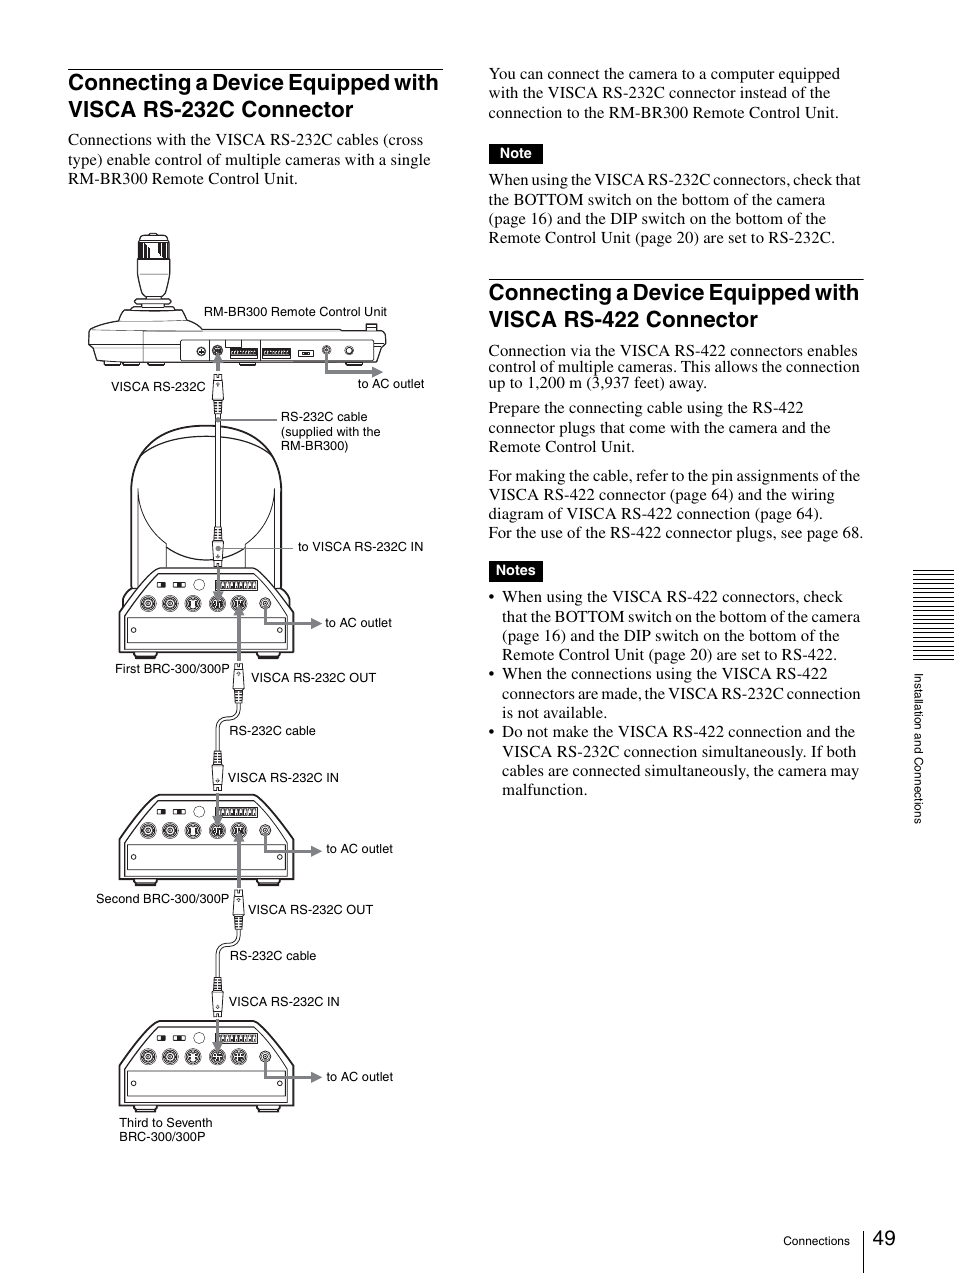 Connecting A Device Equipped With Visca Rs 232c Connector 422 Wiring Diagram Sony 3ccd Color Brc 300p User Manual Page 49 68